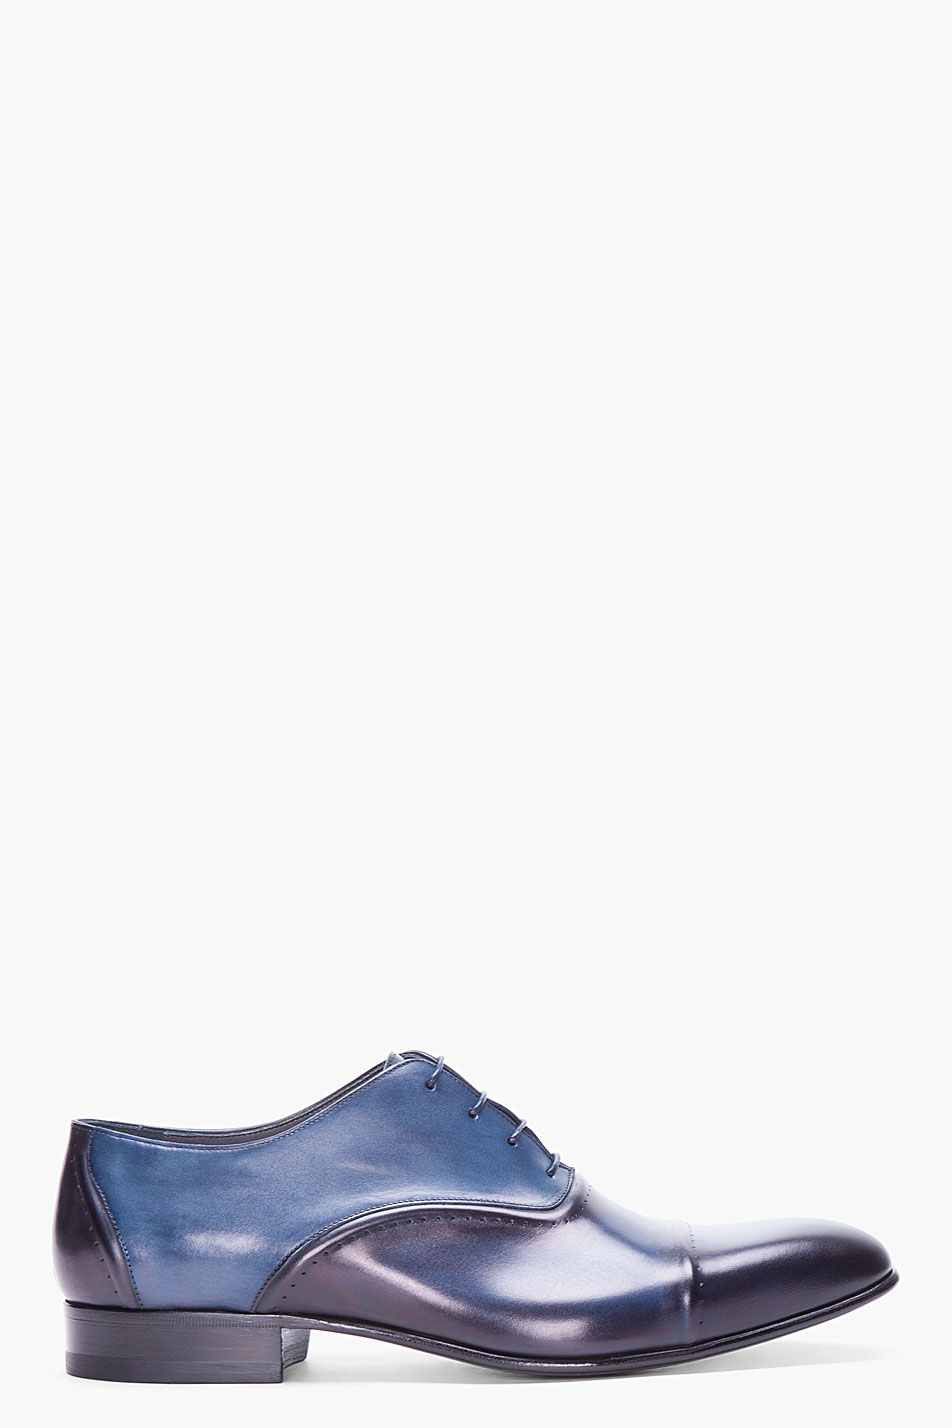 Lyst Lanvin Navy Toesade Dress Shoes In Blue For Men